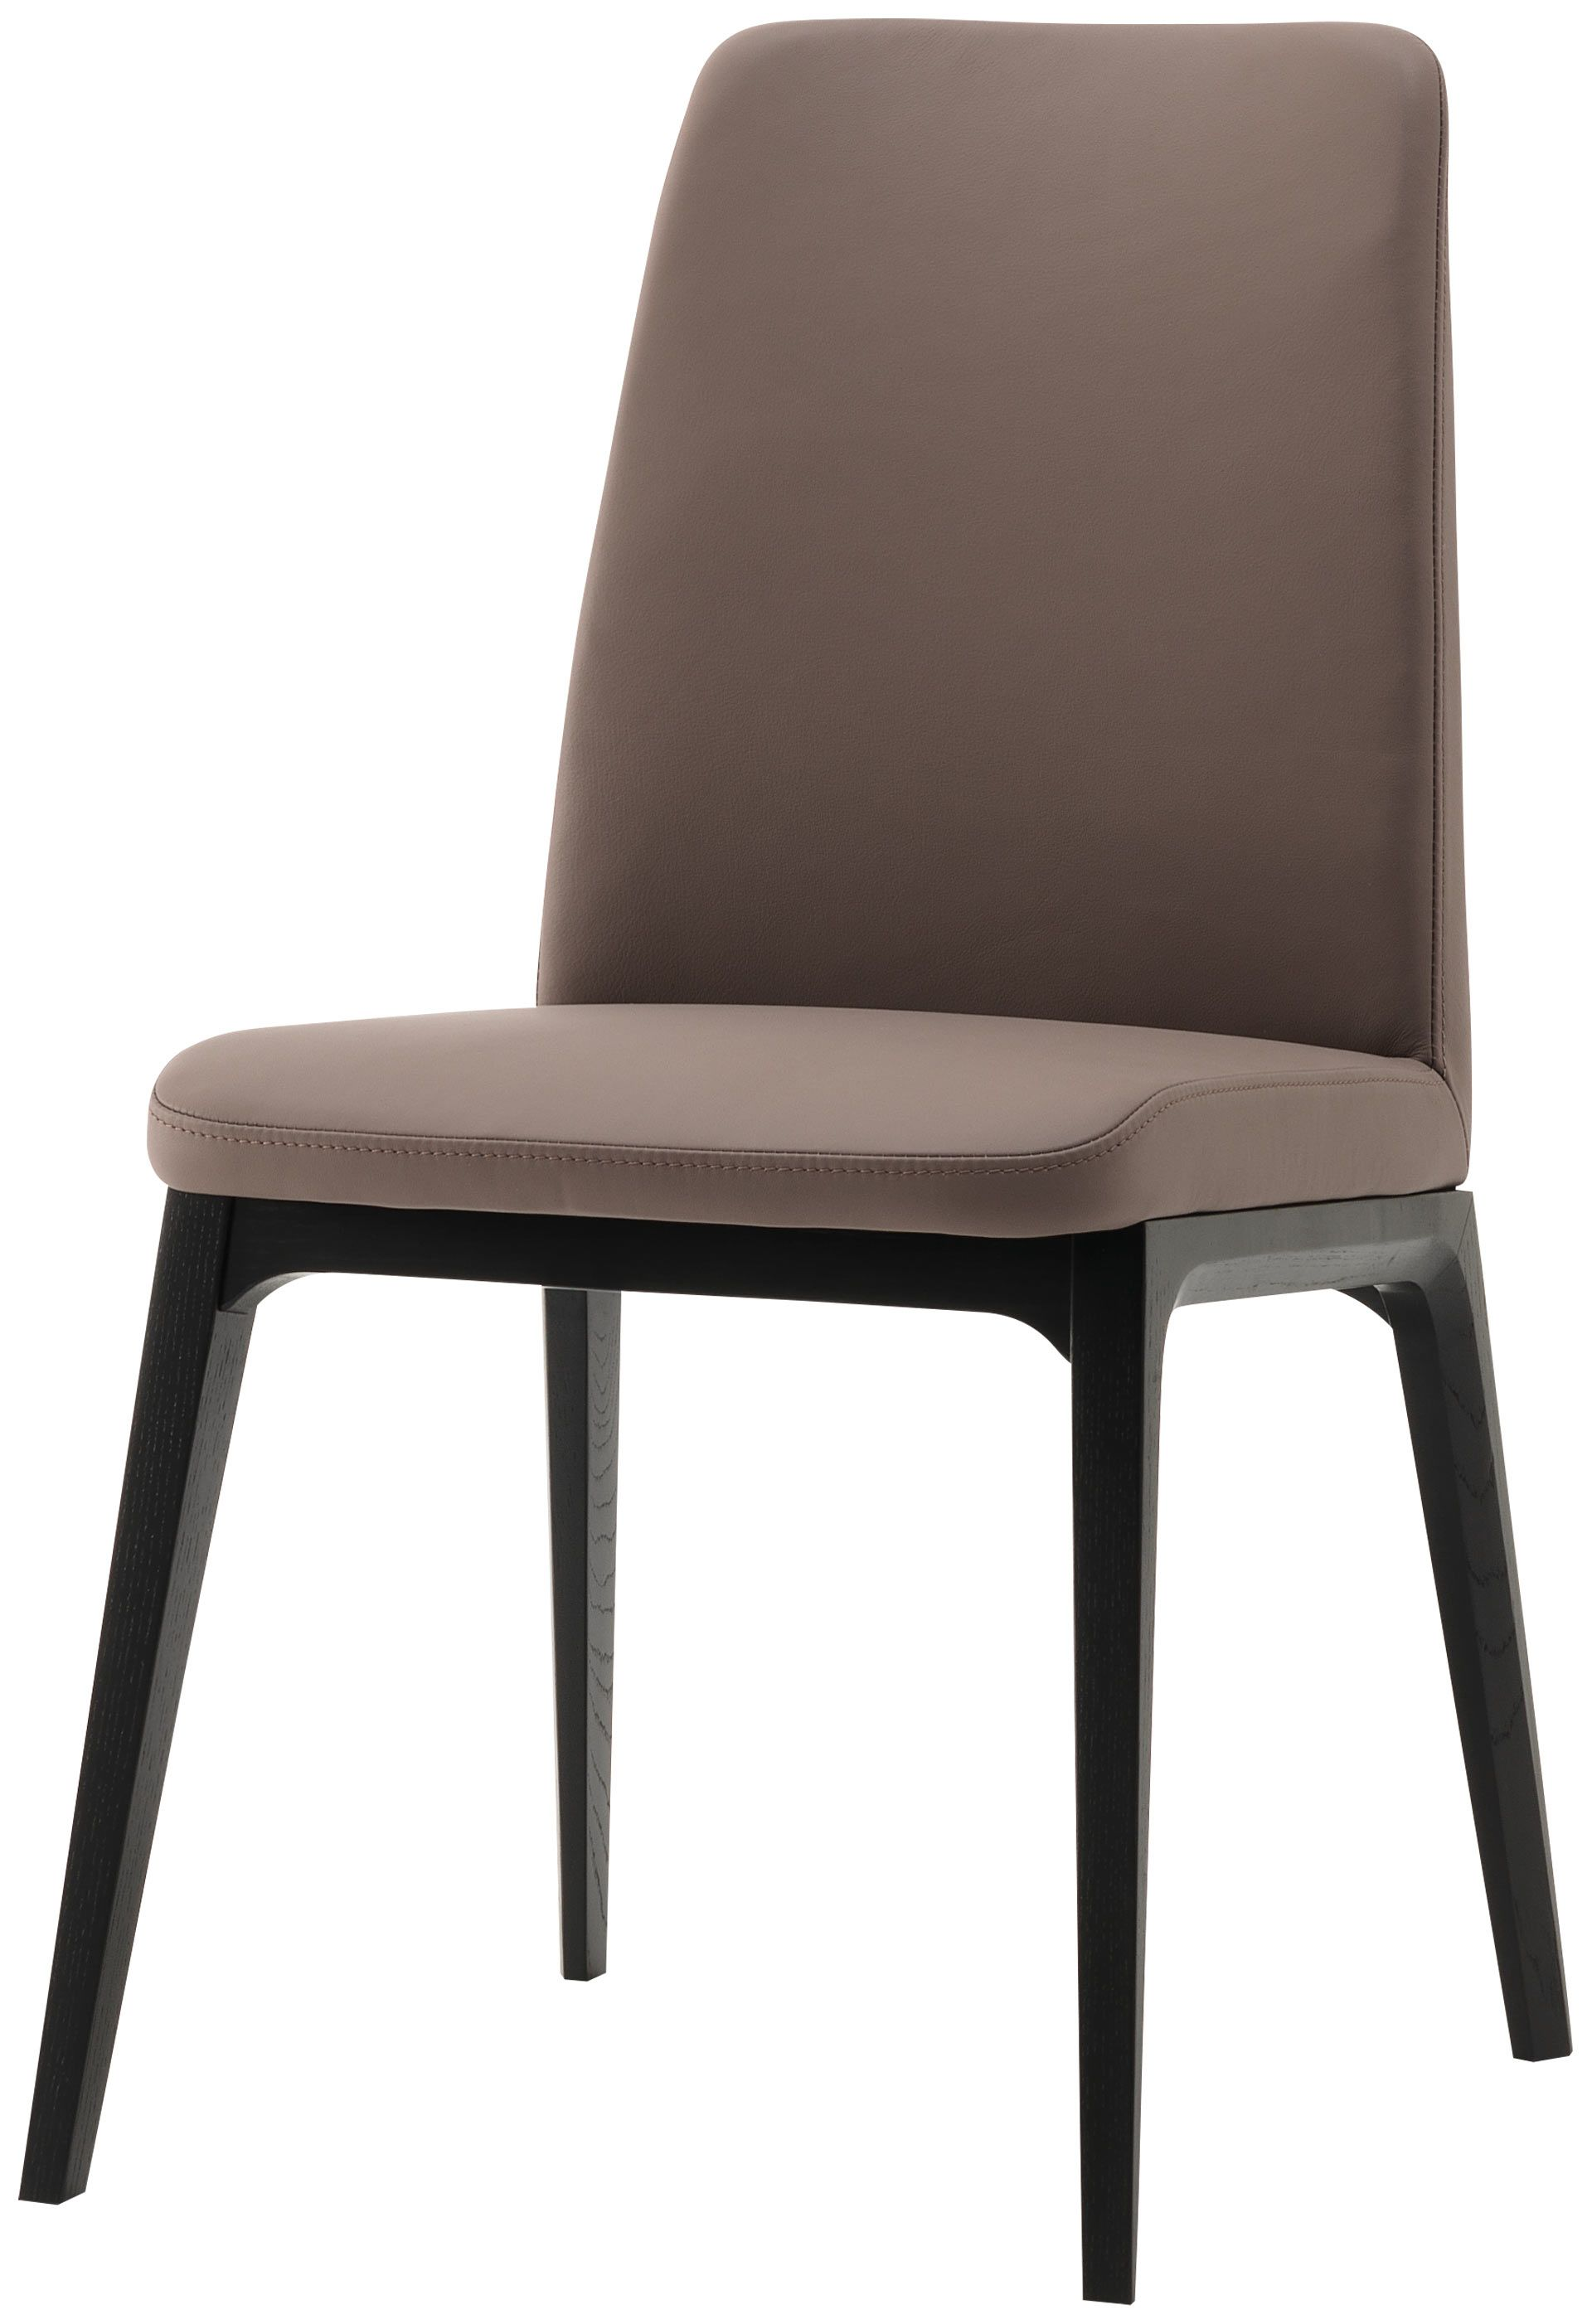 Lausanne Dining Chair Bahia Stone Leather Black Stained